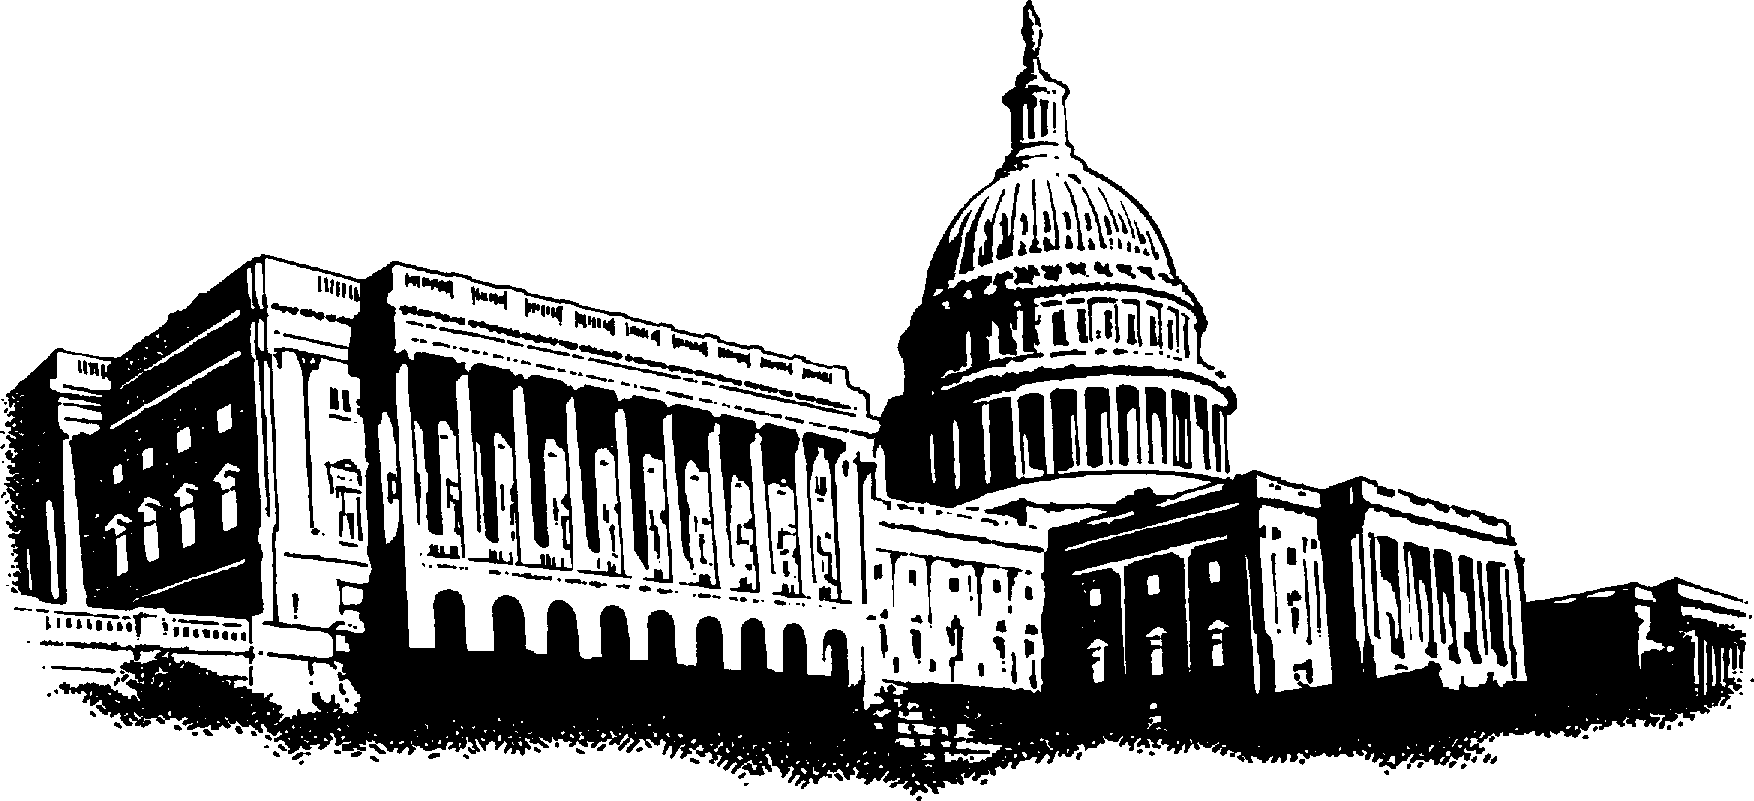 Capitol dome clipart white picture black and white library Free Capitol Cliparts, Download Free Clip Art, Free Clip Art on ... picture black and white library